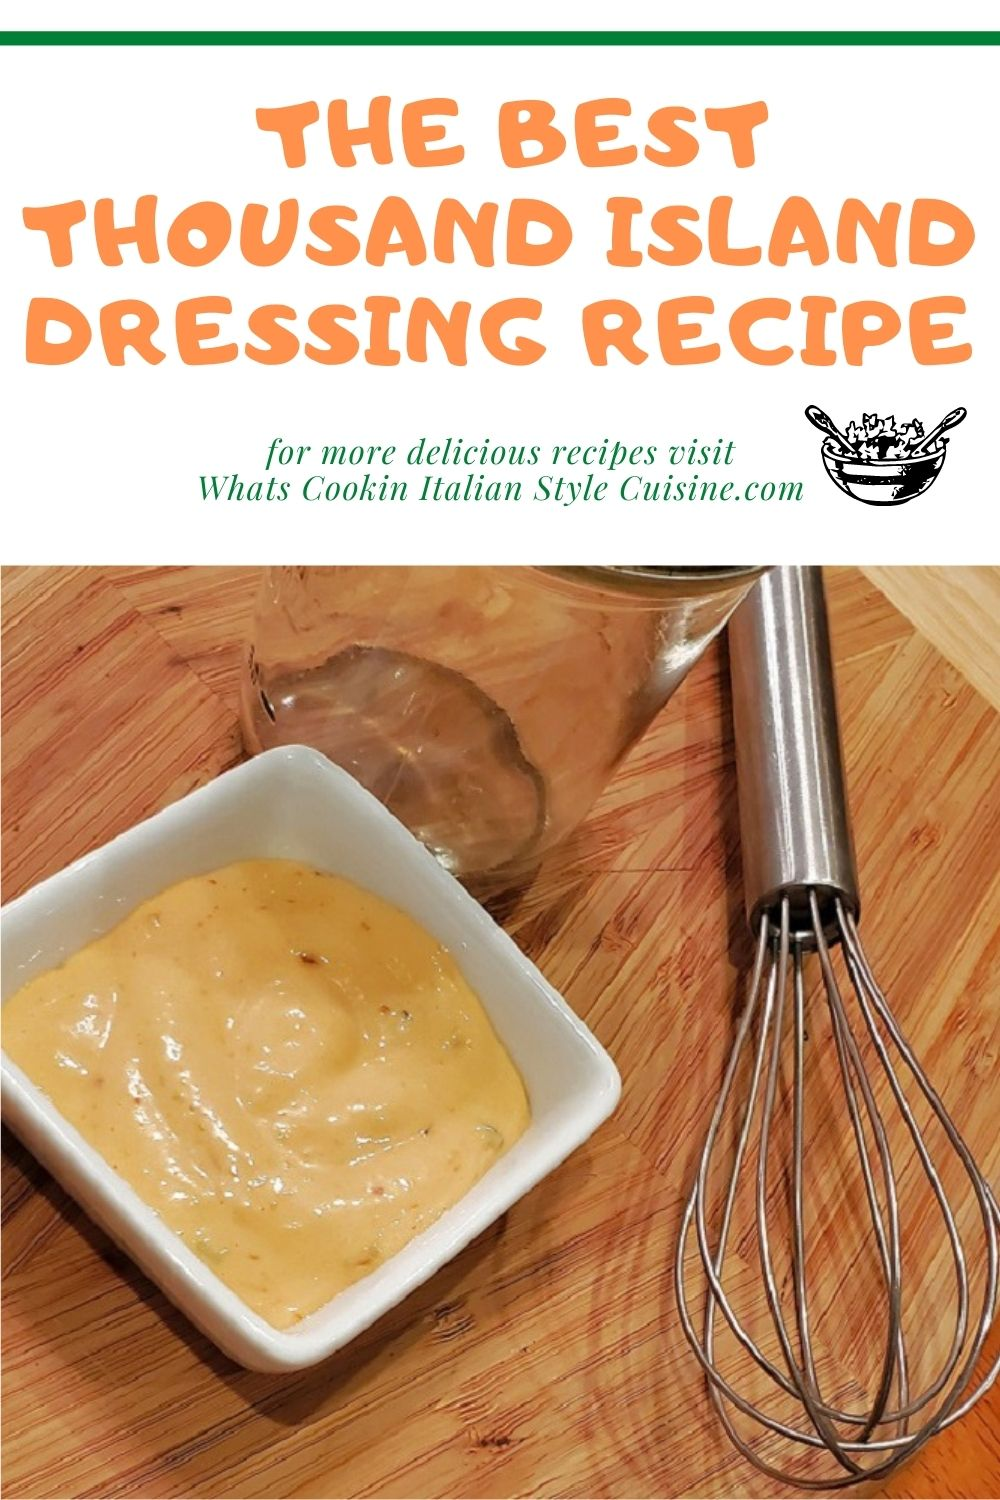 this is homemade Thousand Island Dressing recipe